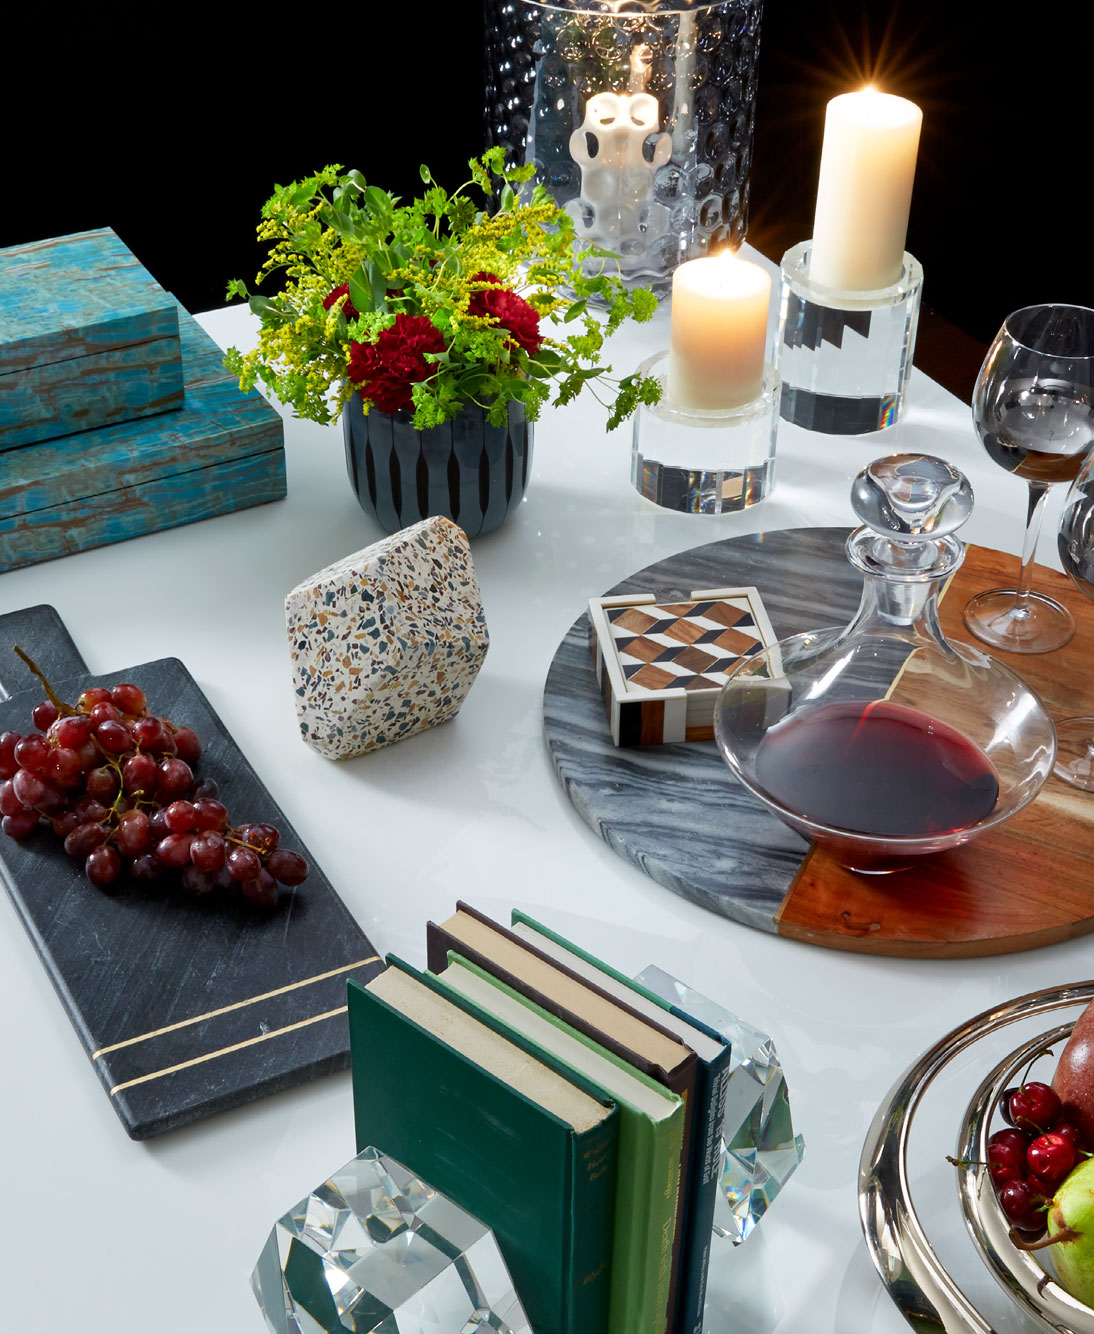 Assorted decor and accessories